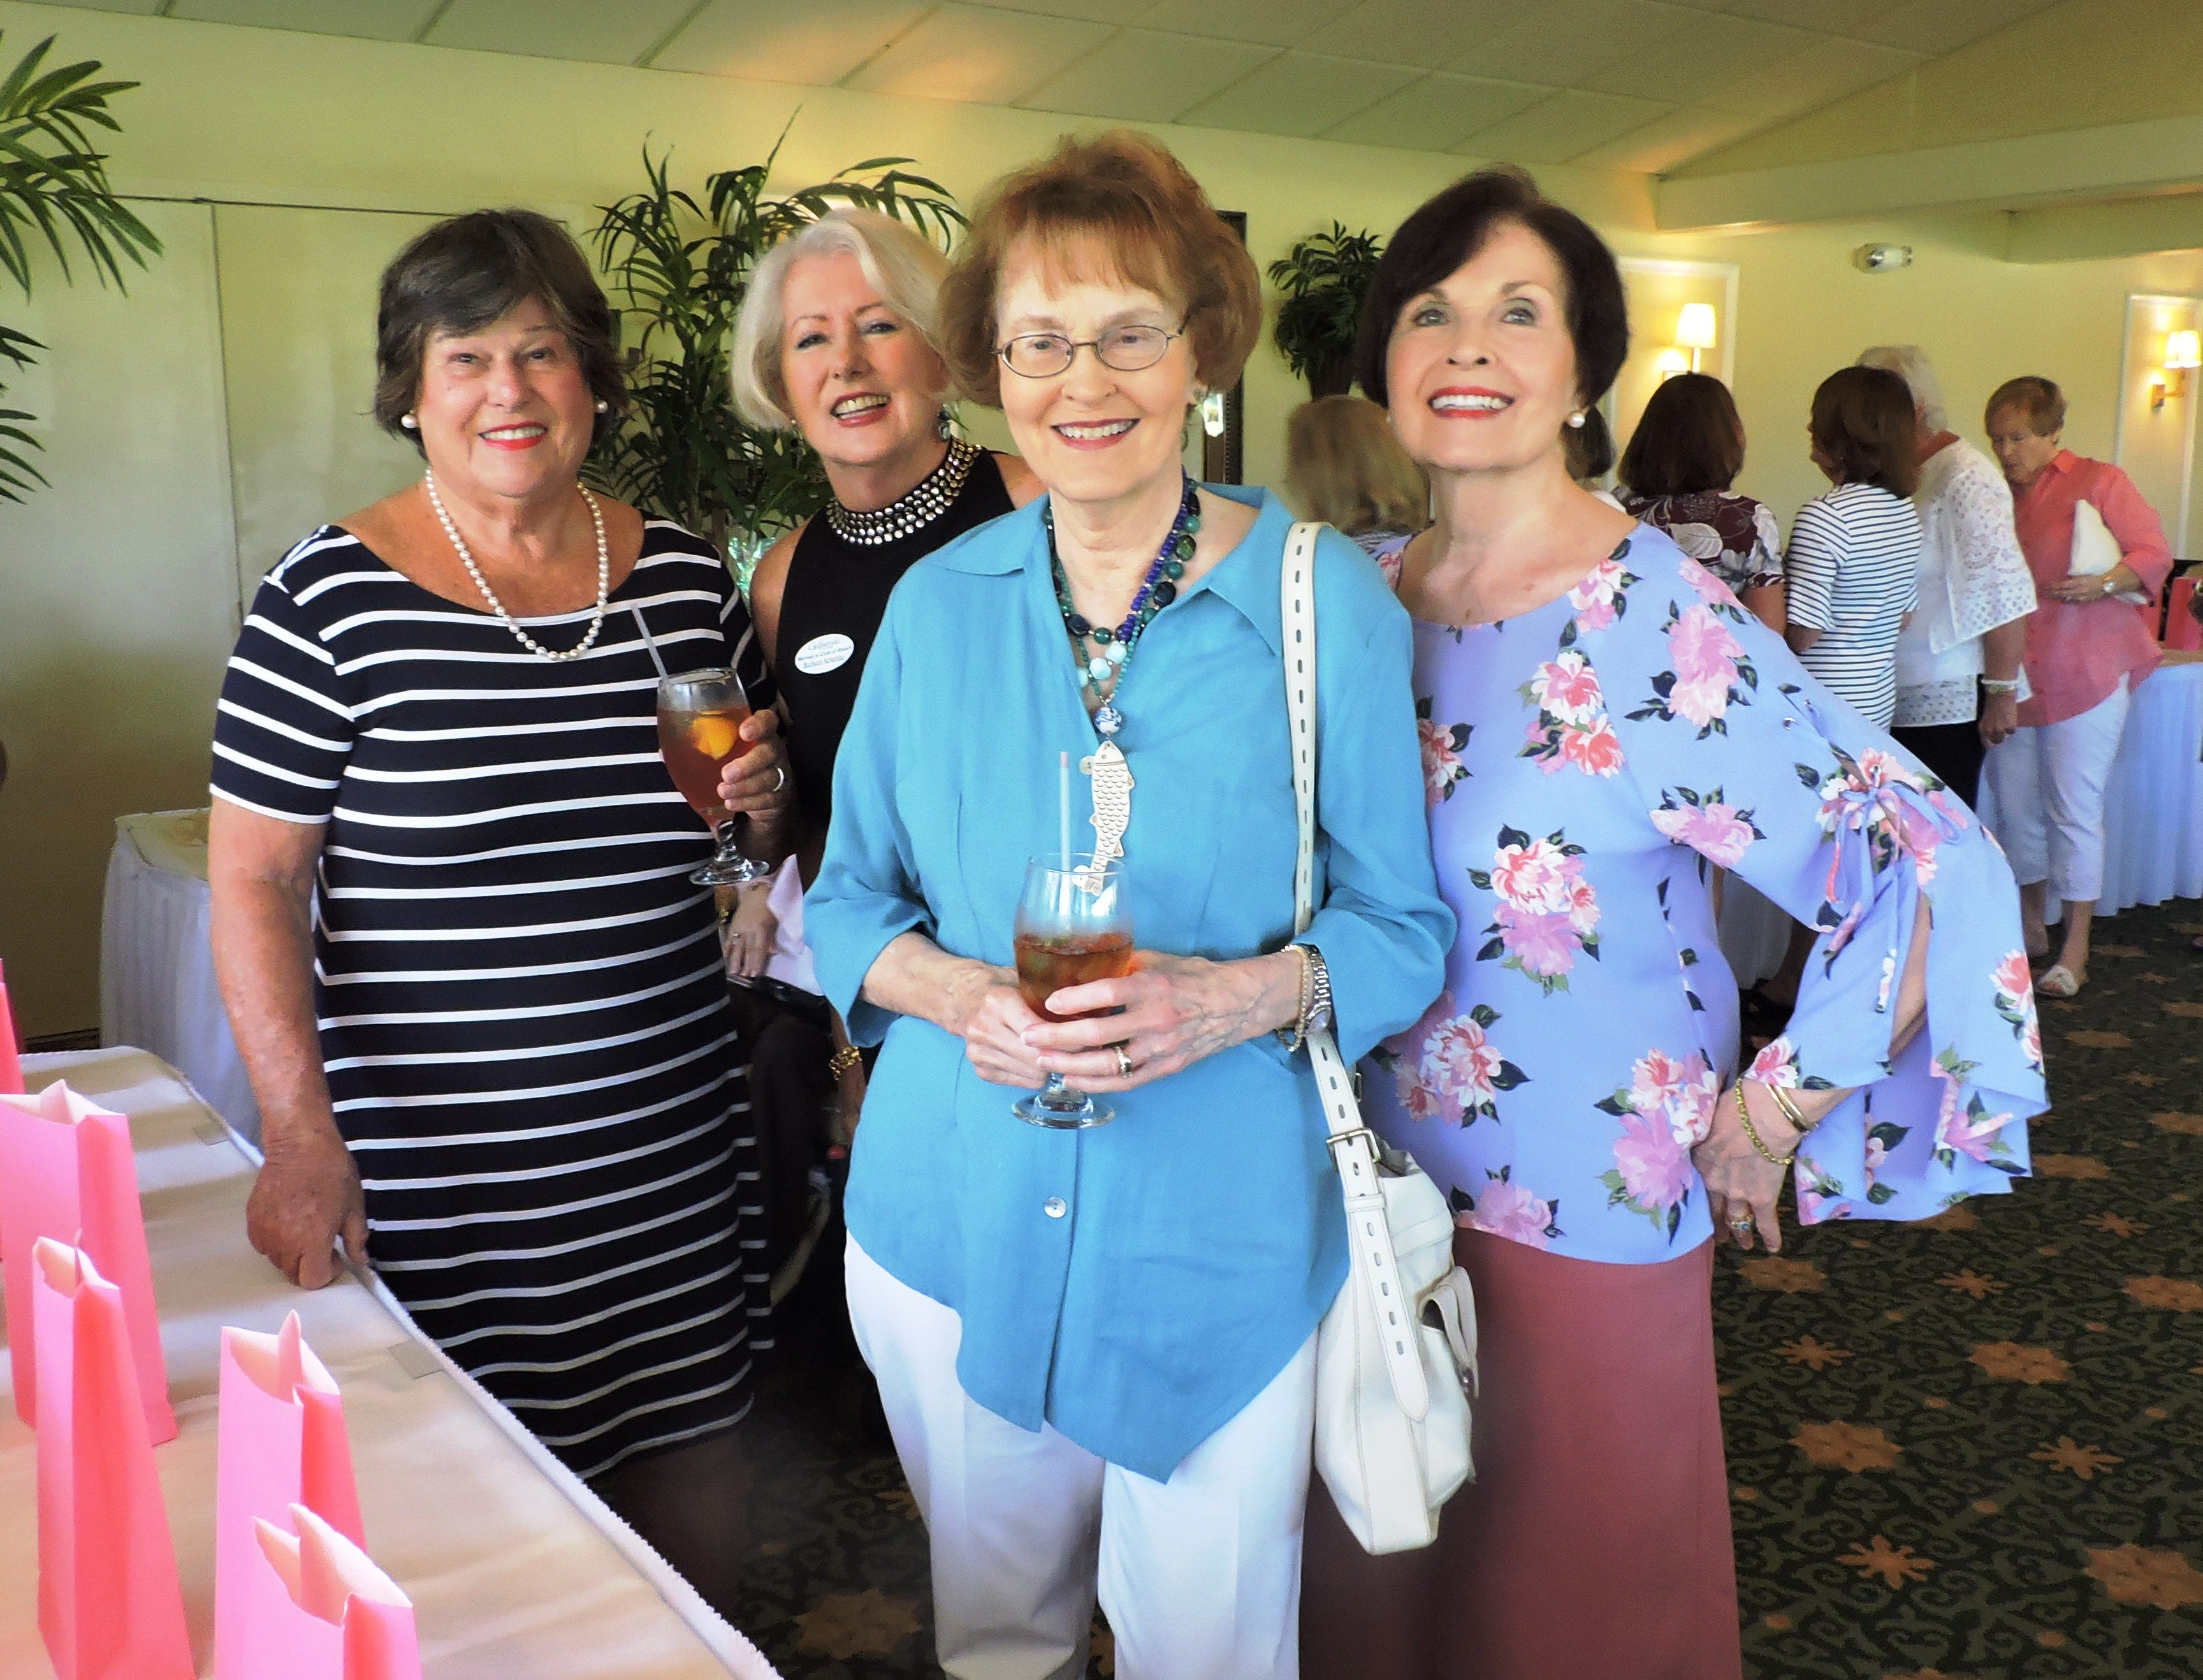 Sandra Wetmore, left, Barbara Scharleau, Judy Mergler and Penny Pagenkopf at Woman's Club of Stuart's annual Food, Friends and Fashion Show.